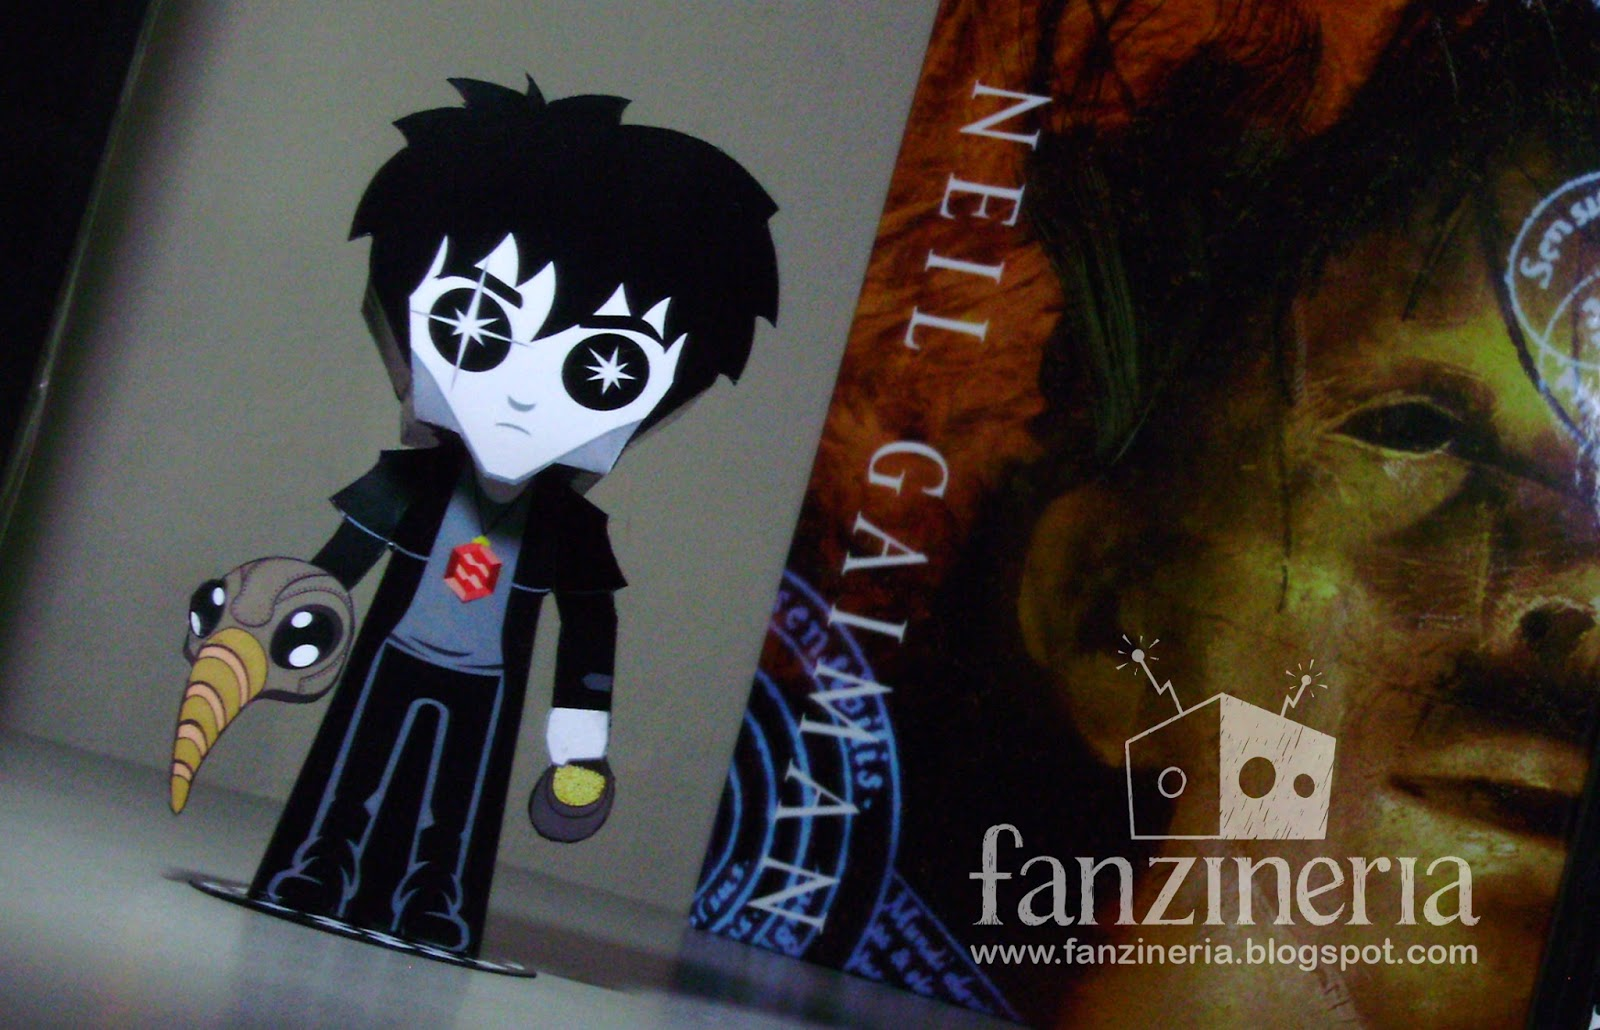 The Sandman Dream Papercraft